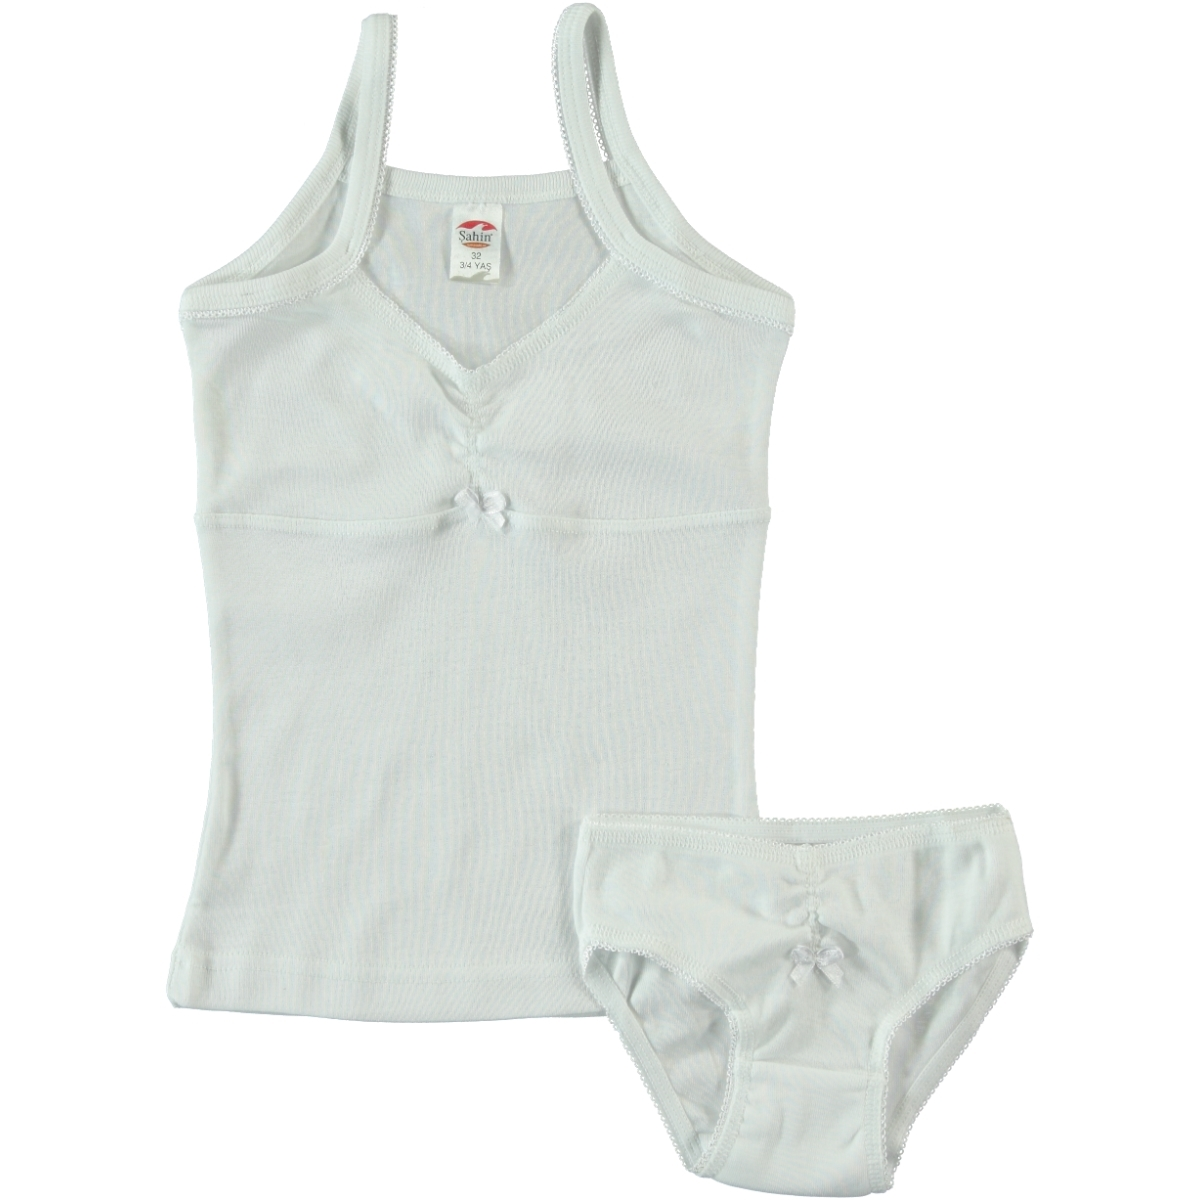 Şahin Combed Cotton Tank Top White Panty The Ages Of 2-12 Team